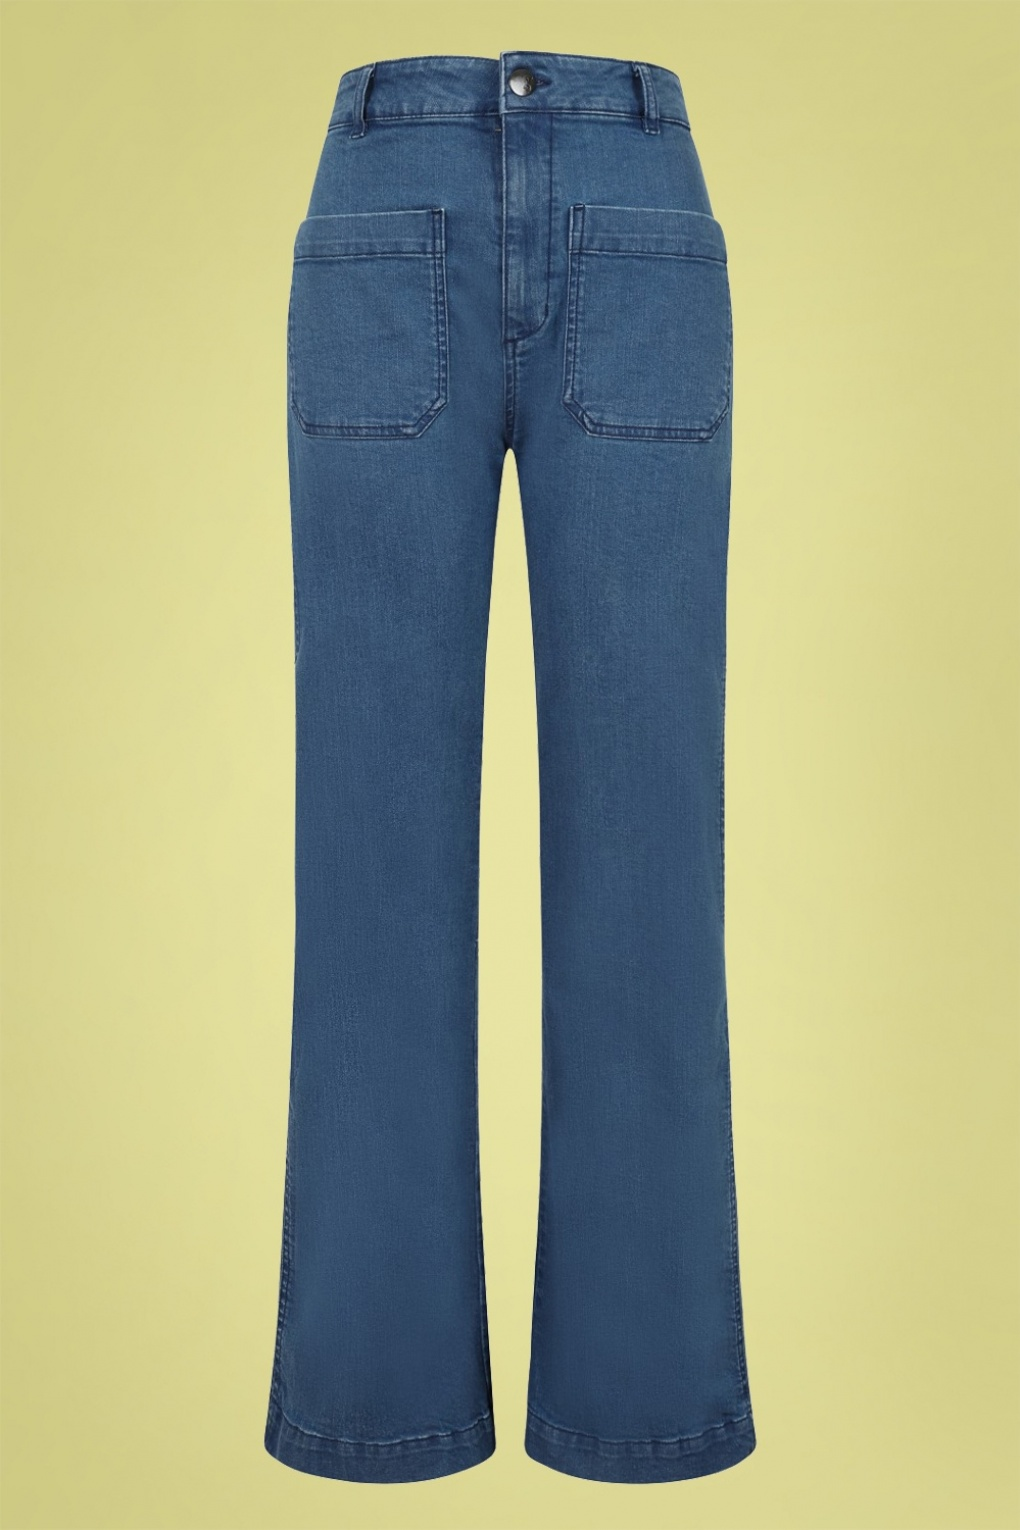 Vintage High Waisted Trousers, Sailor Pants, Jeans 70s Birkin Denim Jeans in Blue £39.74 AT vintagedancer.com